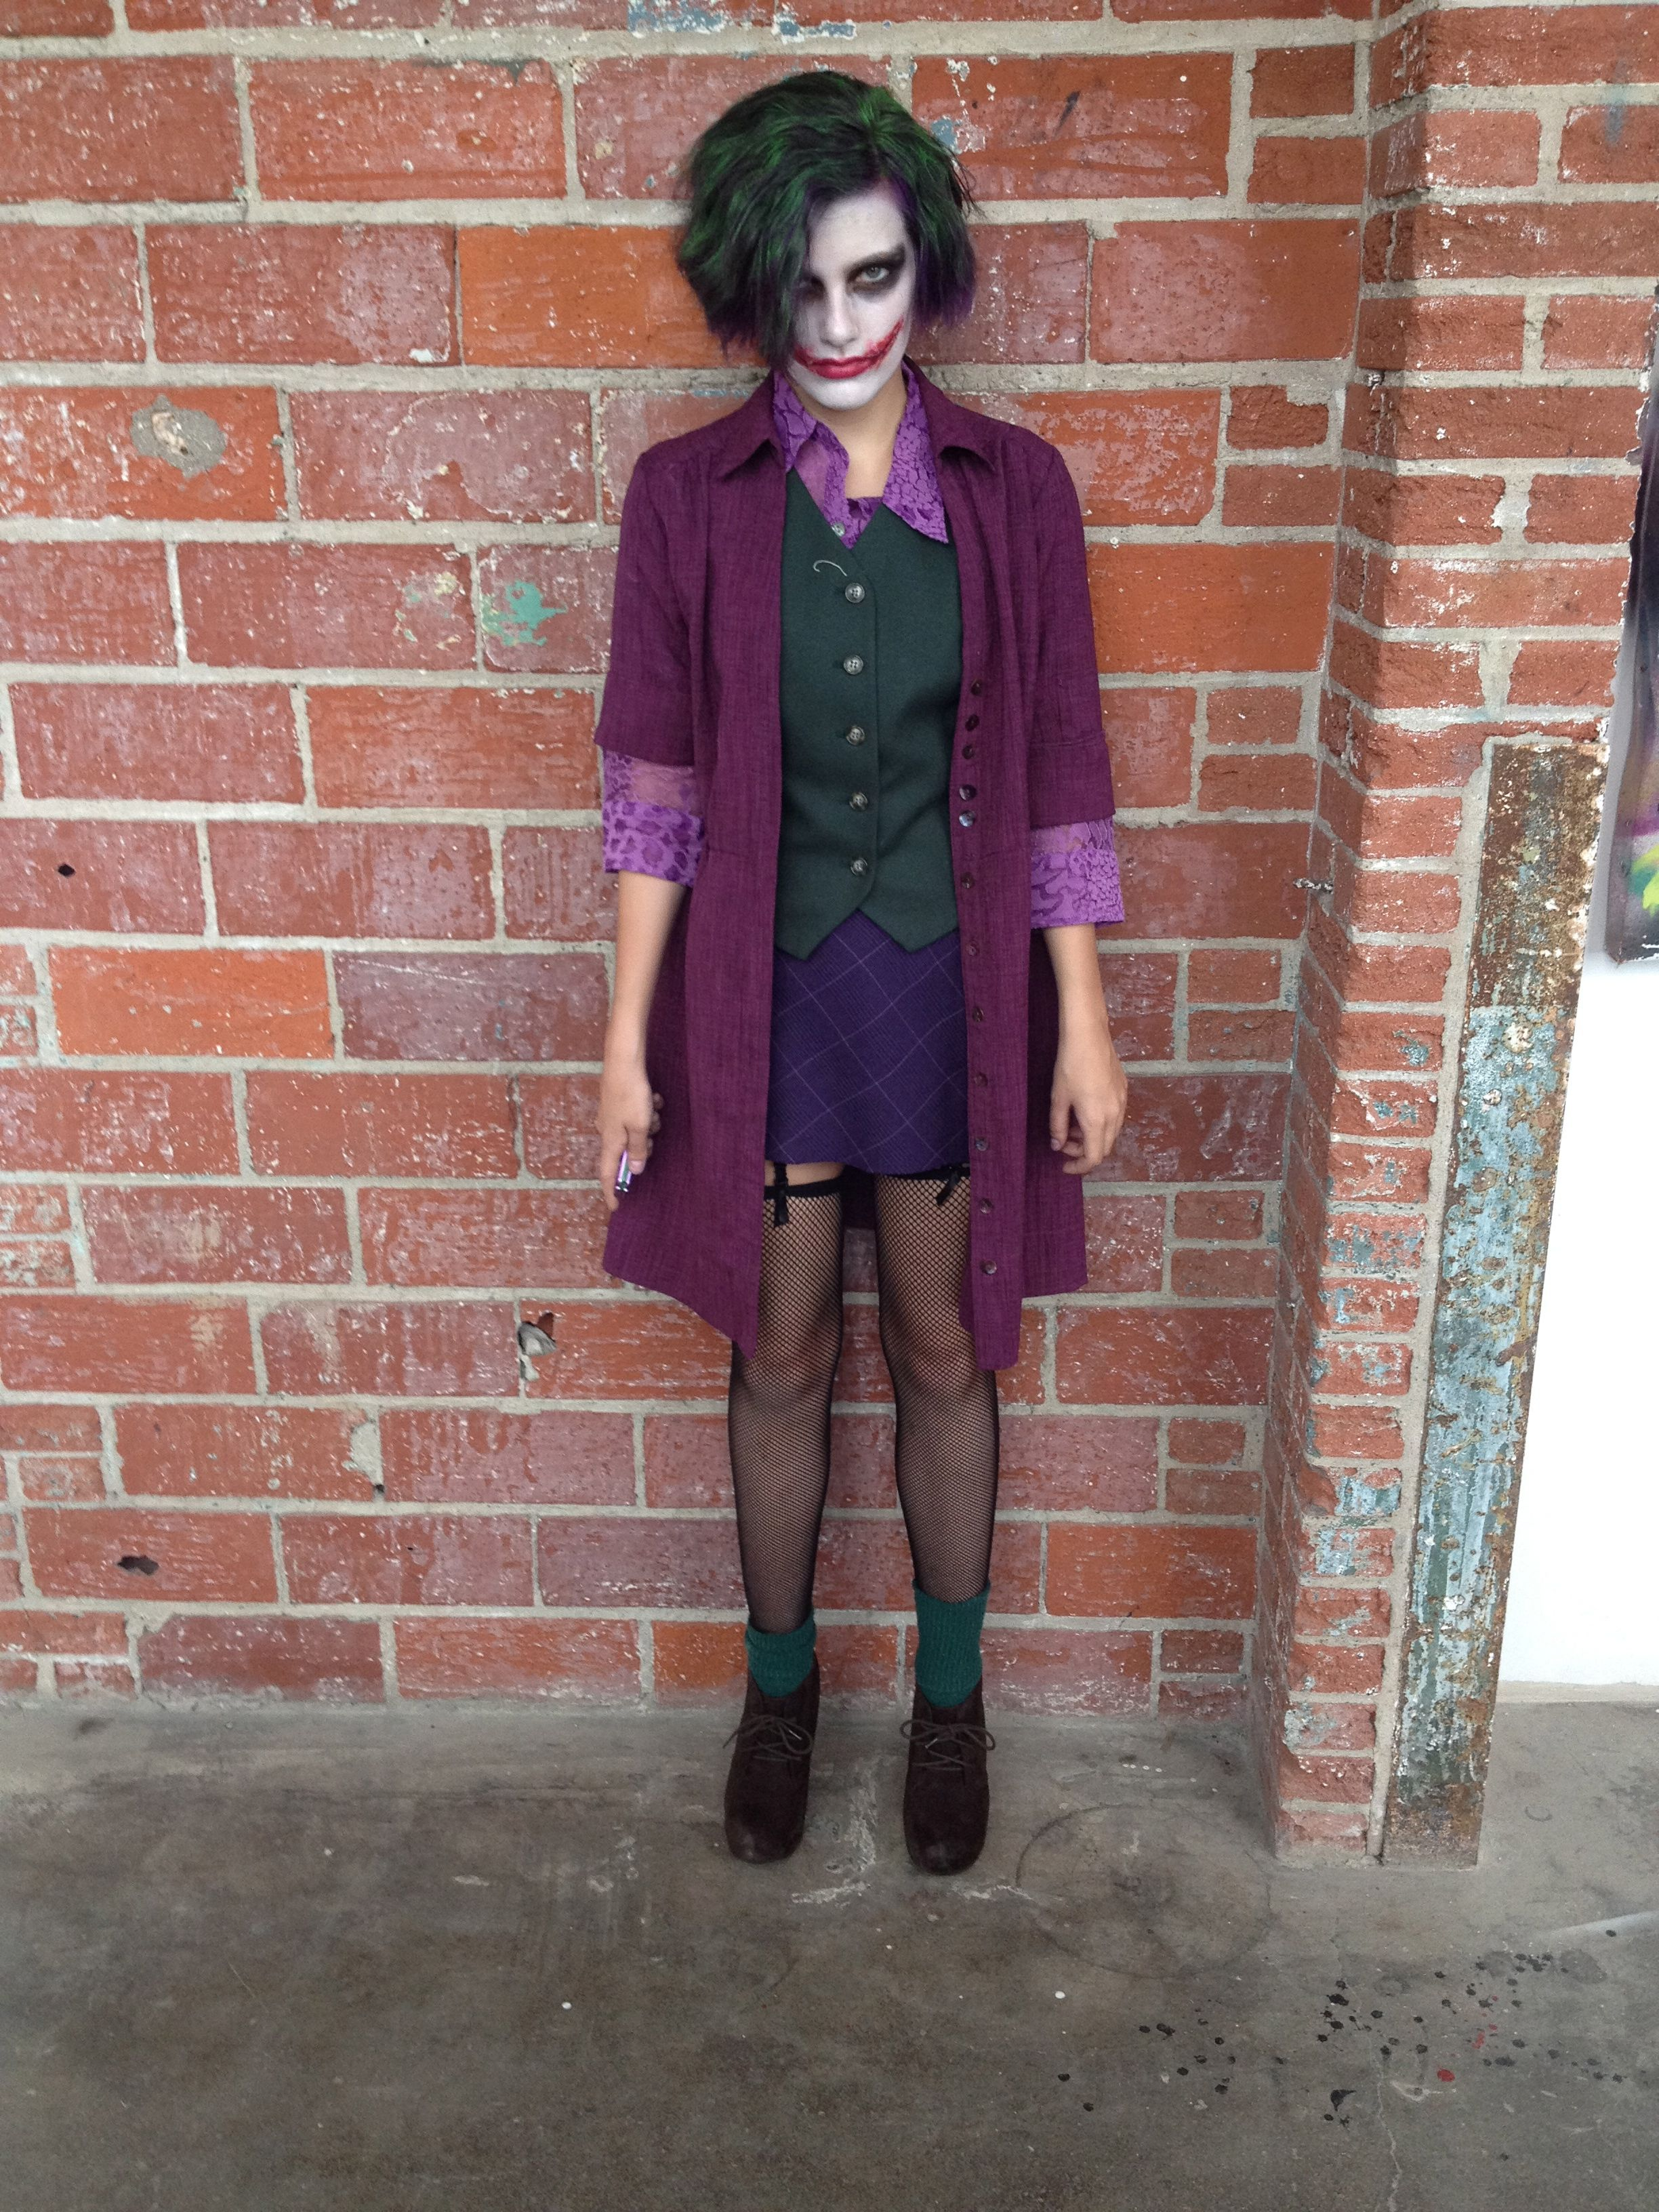 female joker by emerald amyx cosplay dcc in 2018. Black Bedroom Furniture Sets. Home Design Ideas